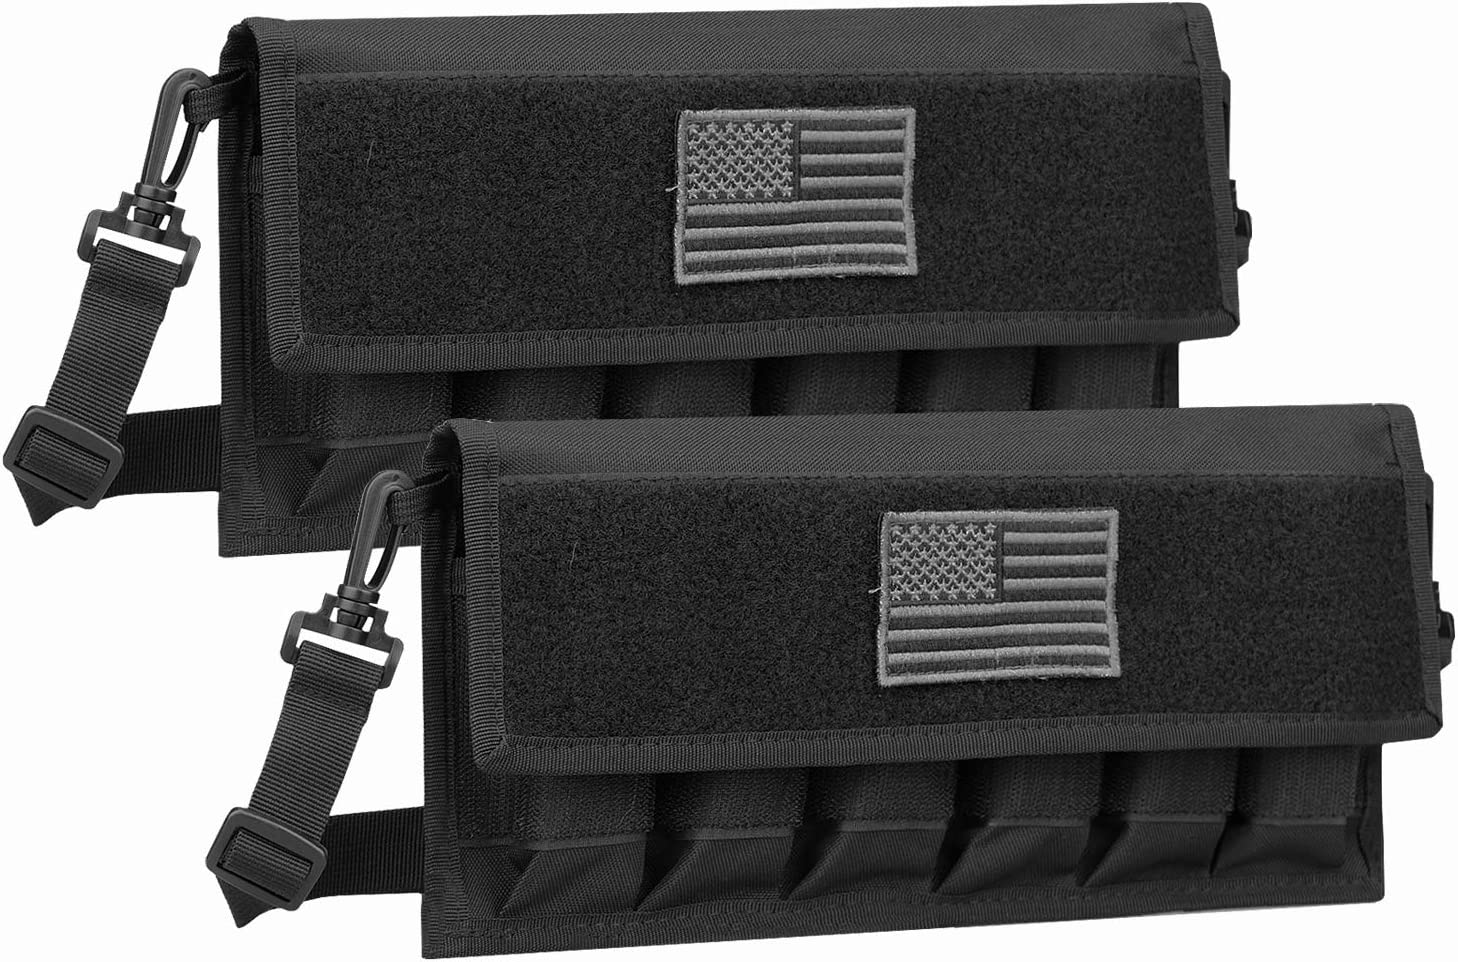 AMYIPO Tactical Gun Pistol Industry No. 1 Magazine Quantity limited Pouch 6 Storage Holder Mag